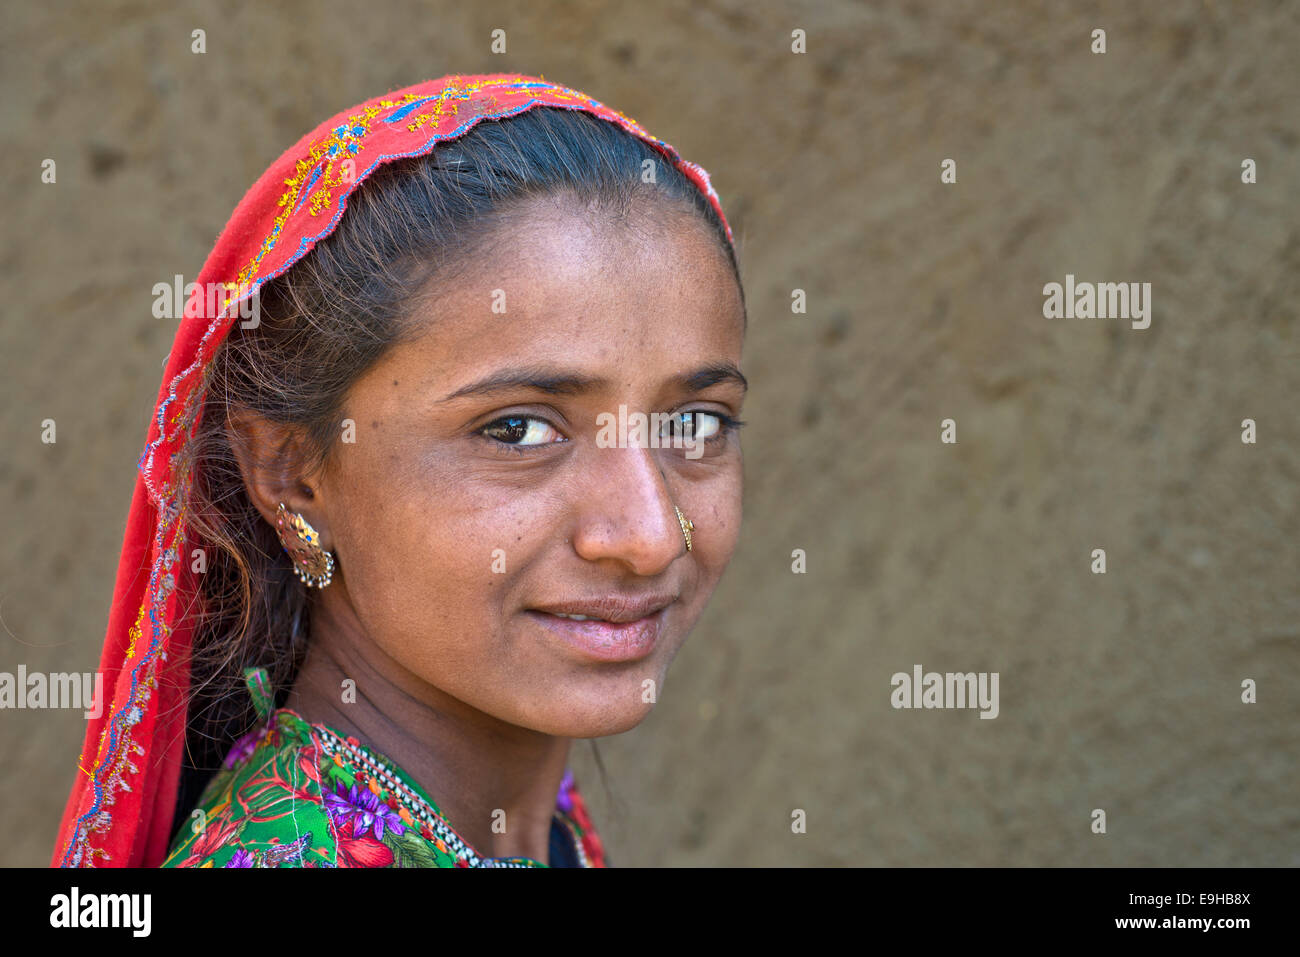 Girl with a headscarf and jewellery, portrait, Rann of Kutch, Gujarat, India - Stock Image